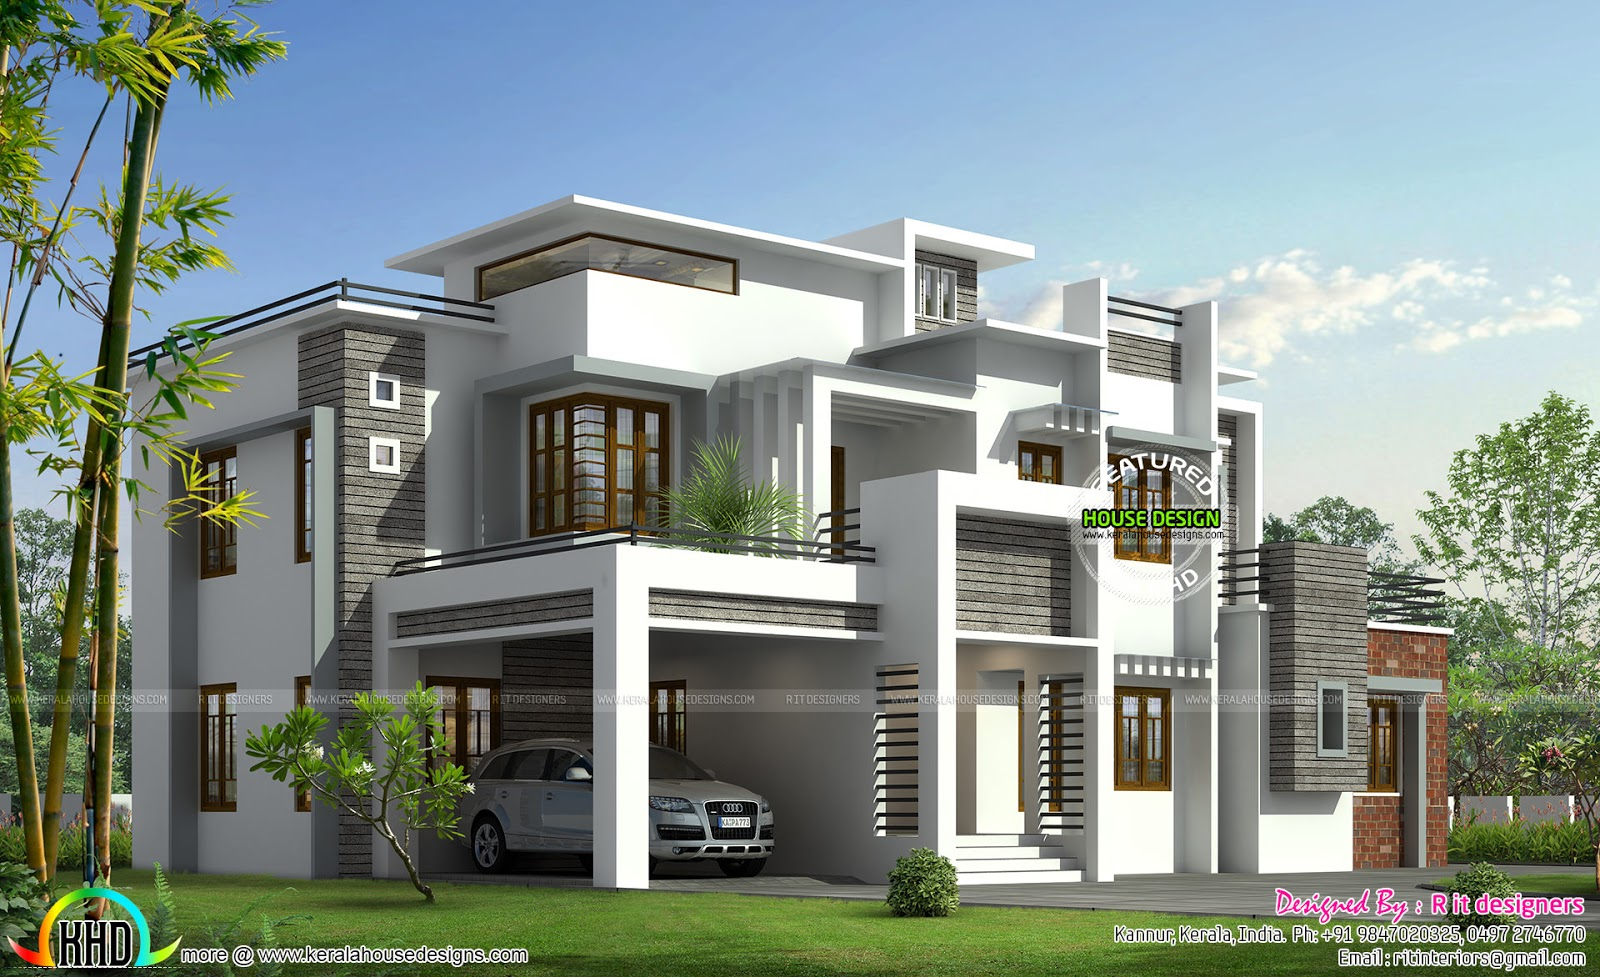 Box model contemporary house kerala home design and for Modern box type house design